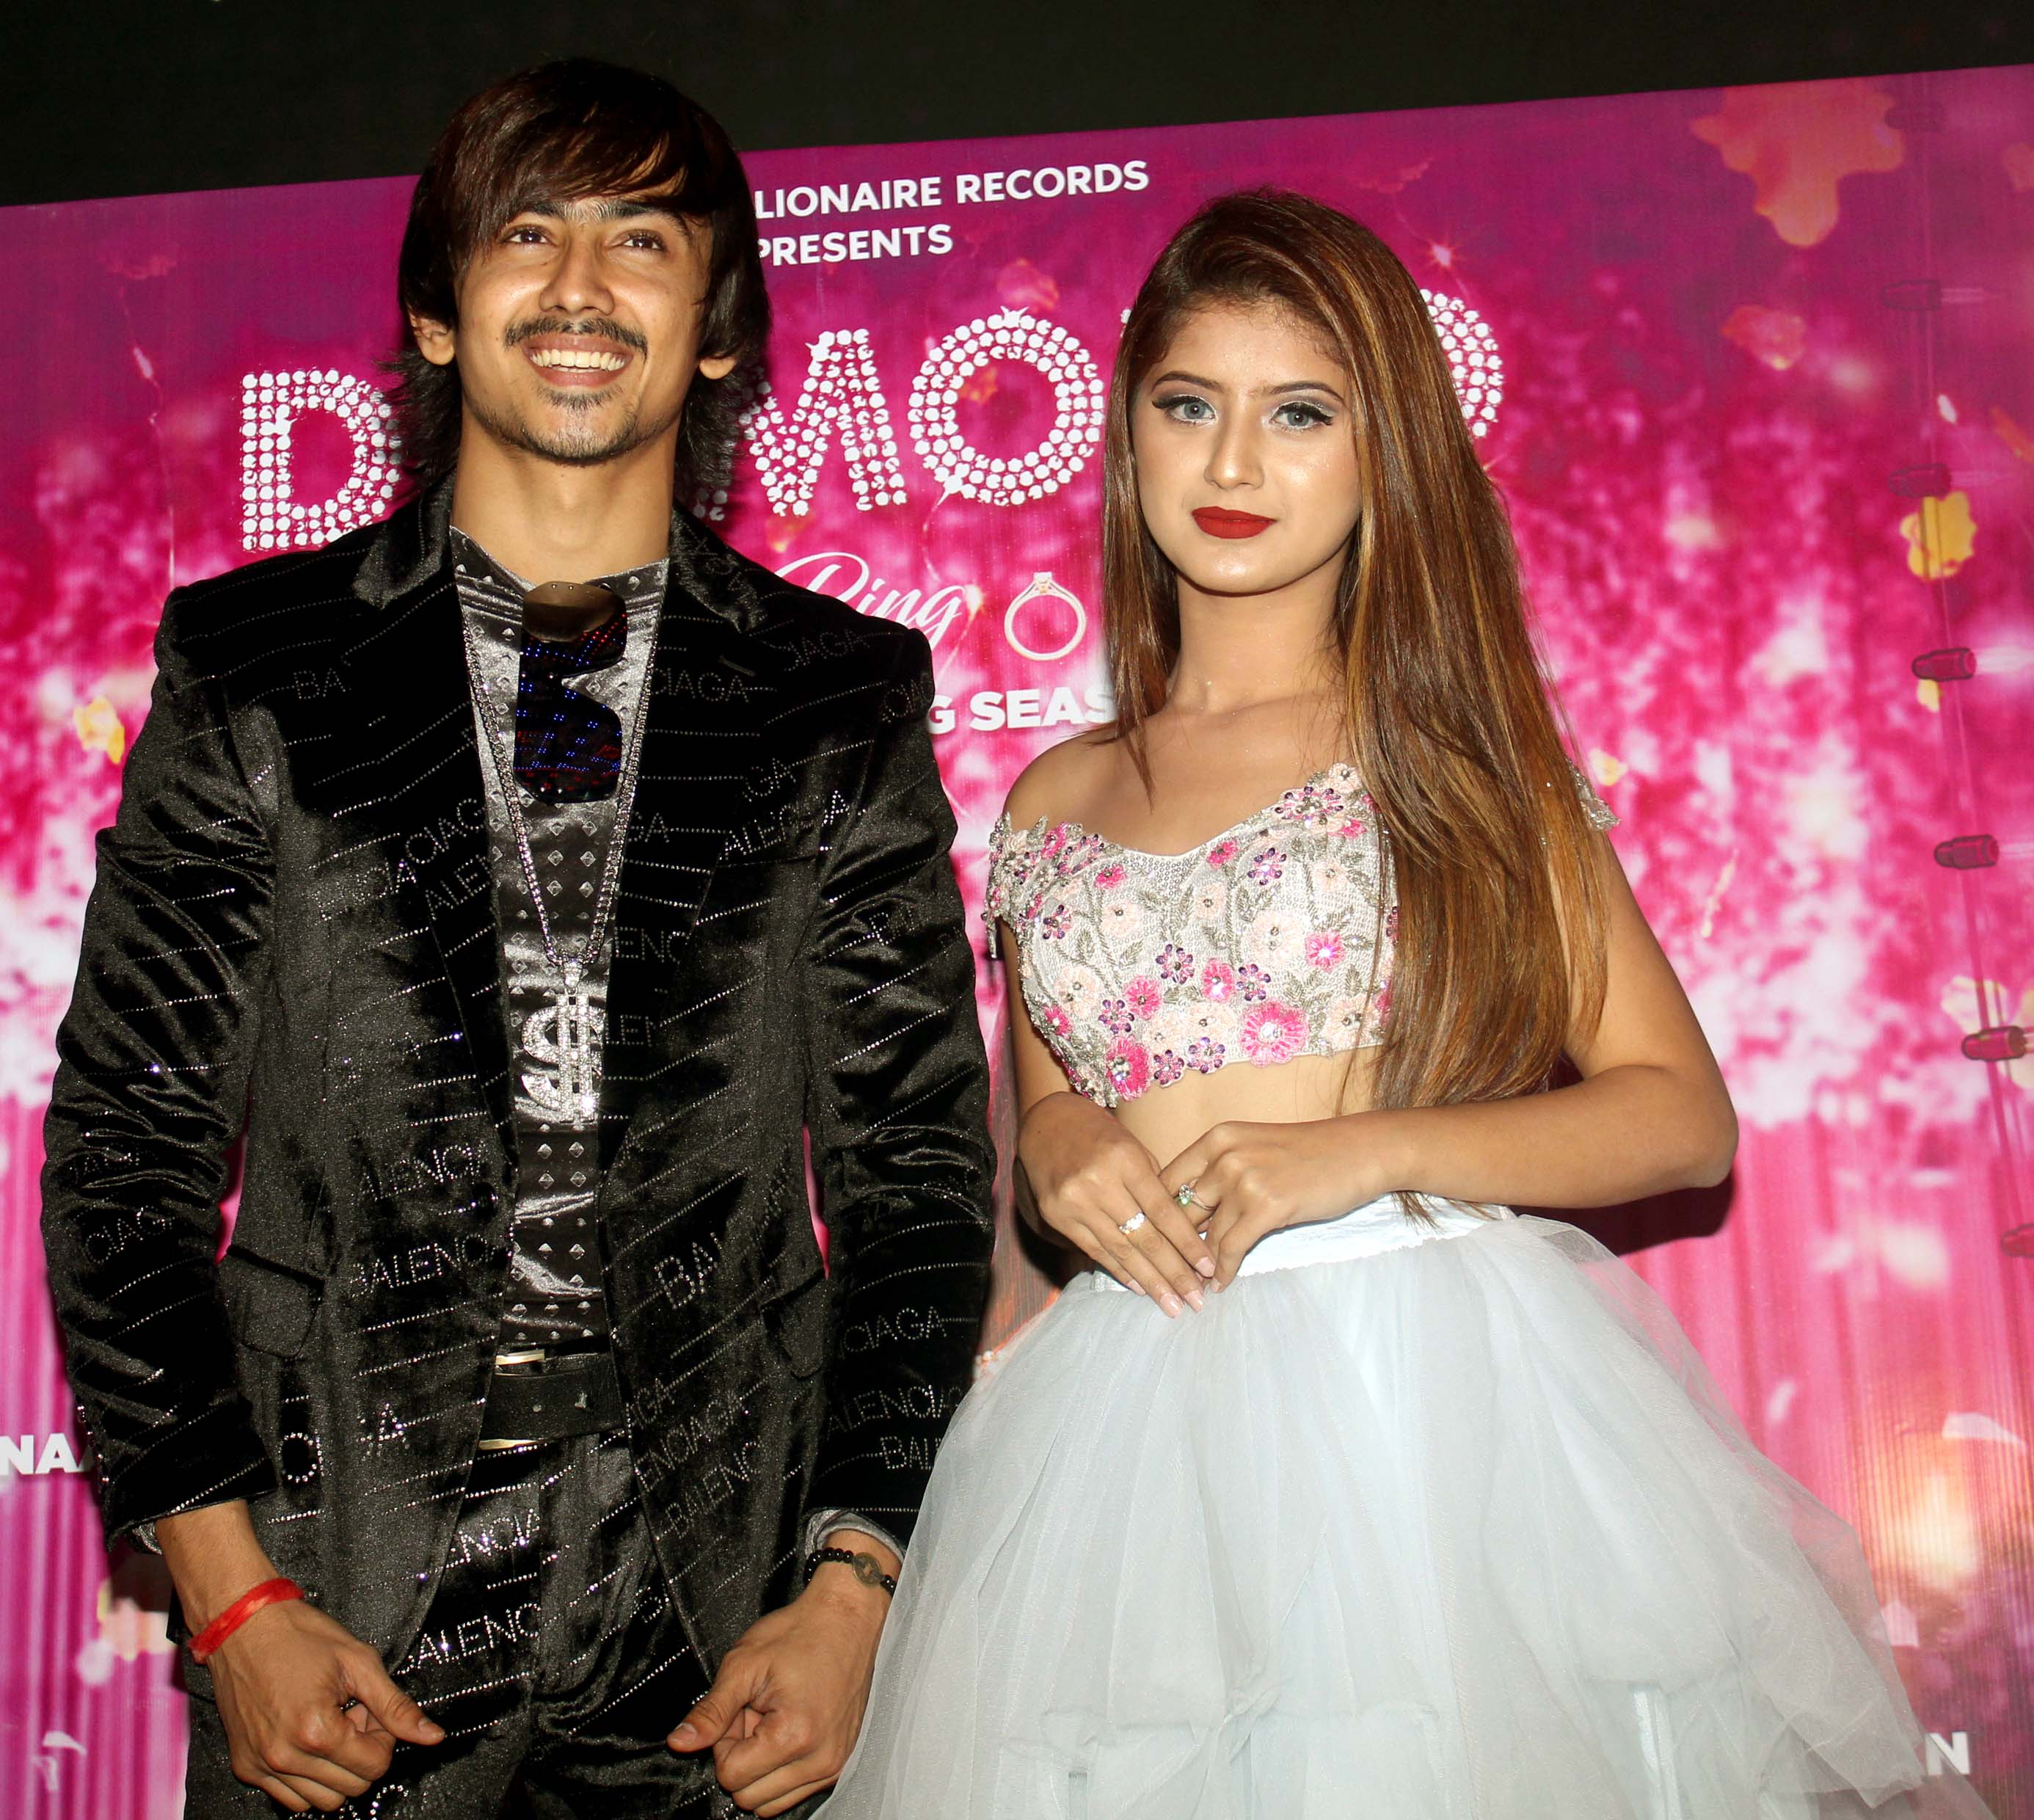 TV actor Arishfa Khan and Adnaan Shaikh launched their Diamond Ring song